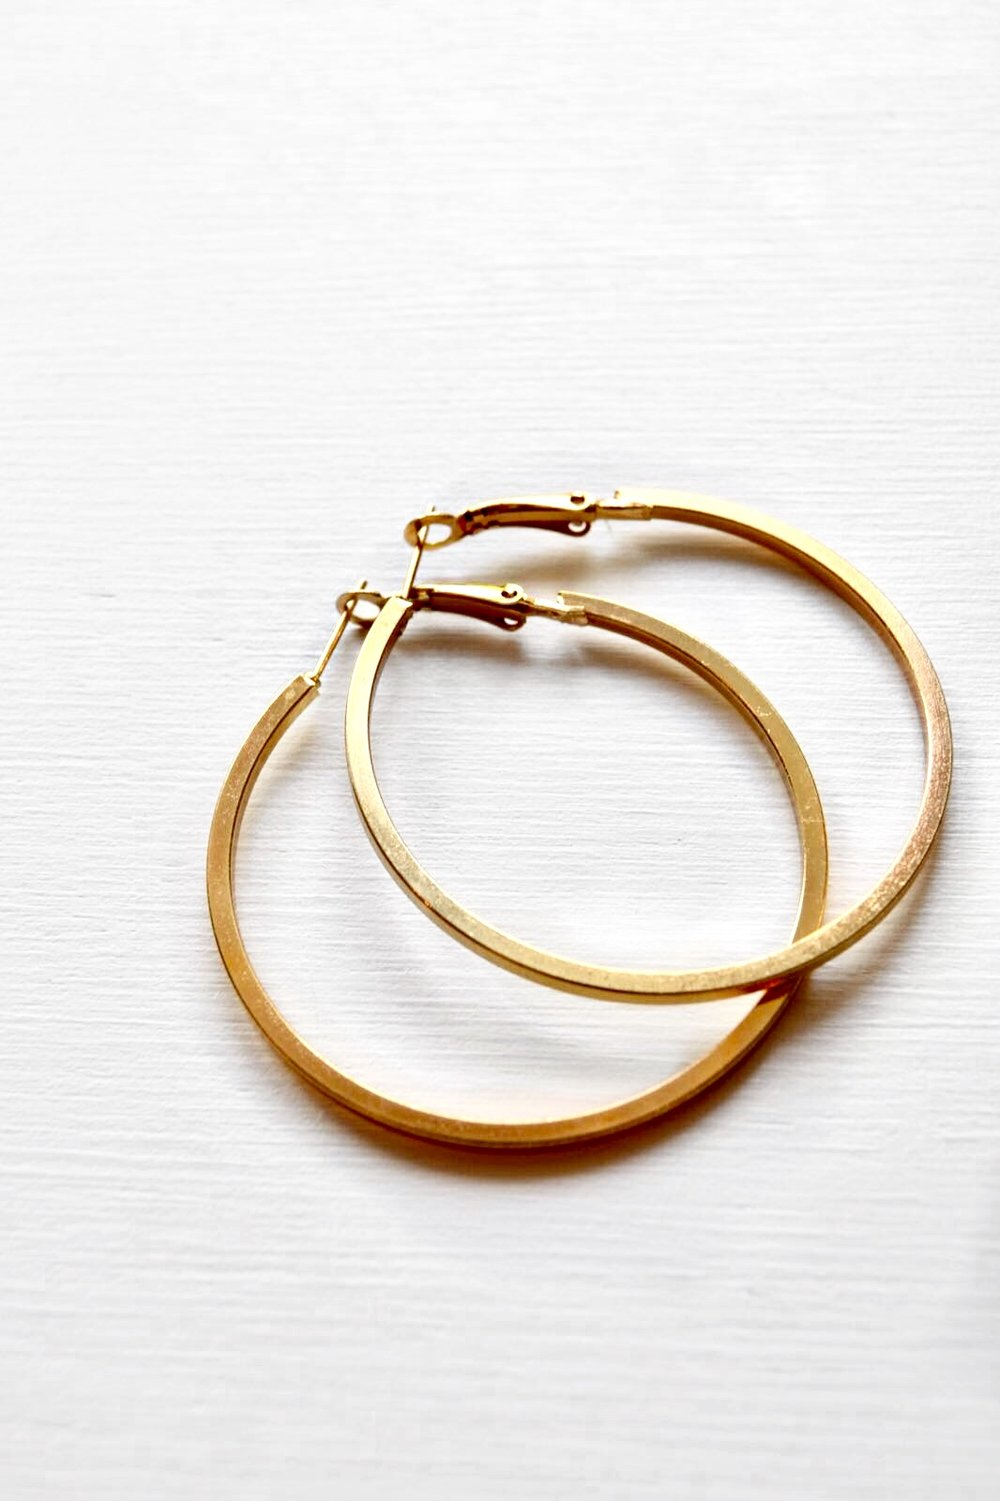 - And this wouldn't be a blogpost about jewelry, if it didn't include hoops. Hoops are probably the most staple and worn kinds of earrings ever. They're are classics.